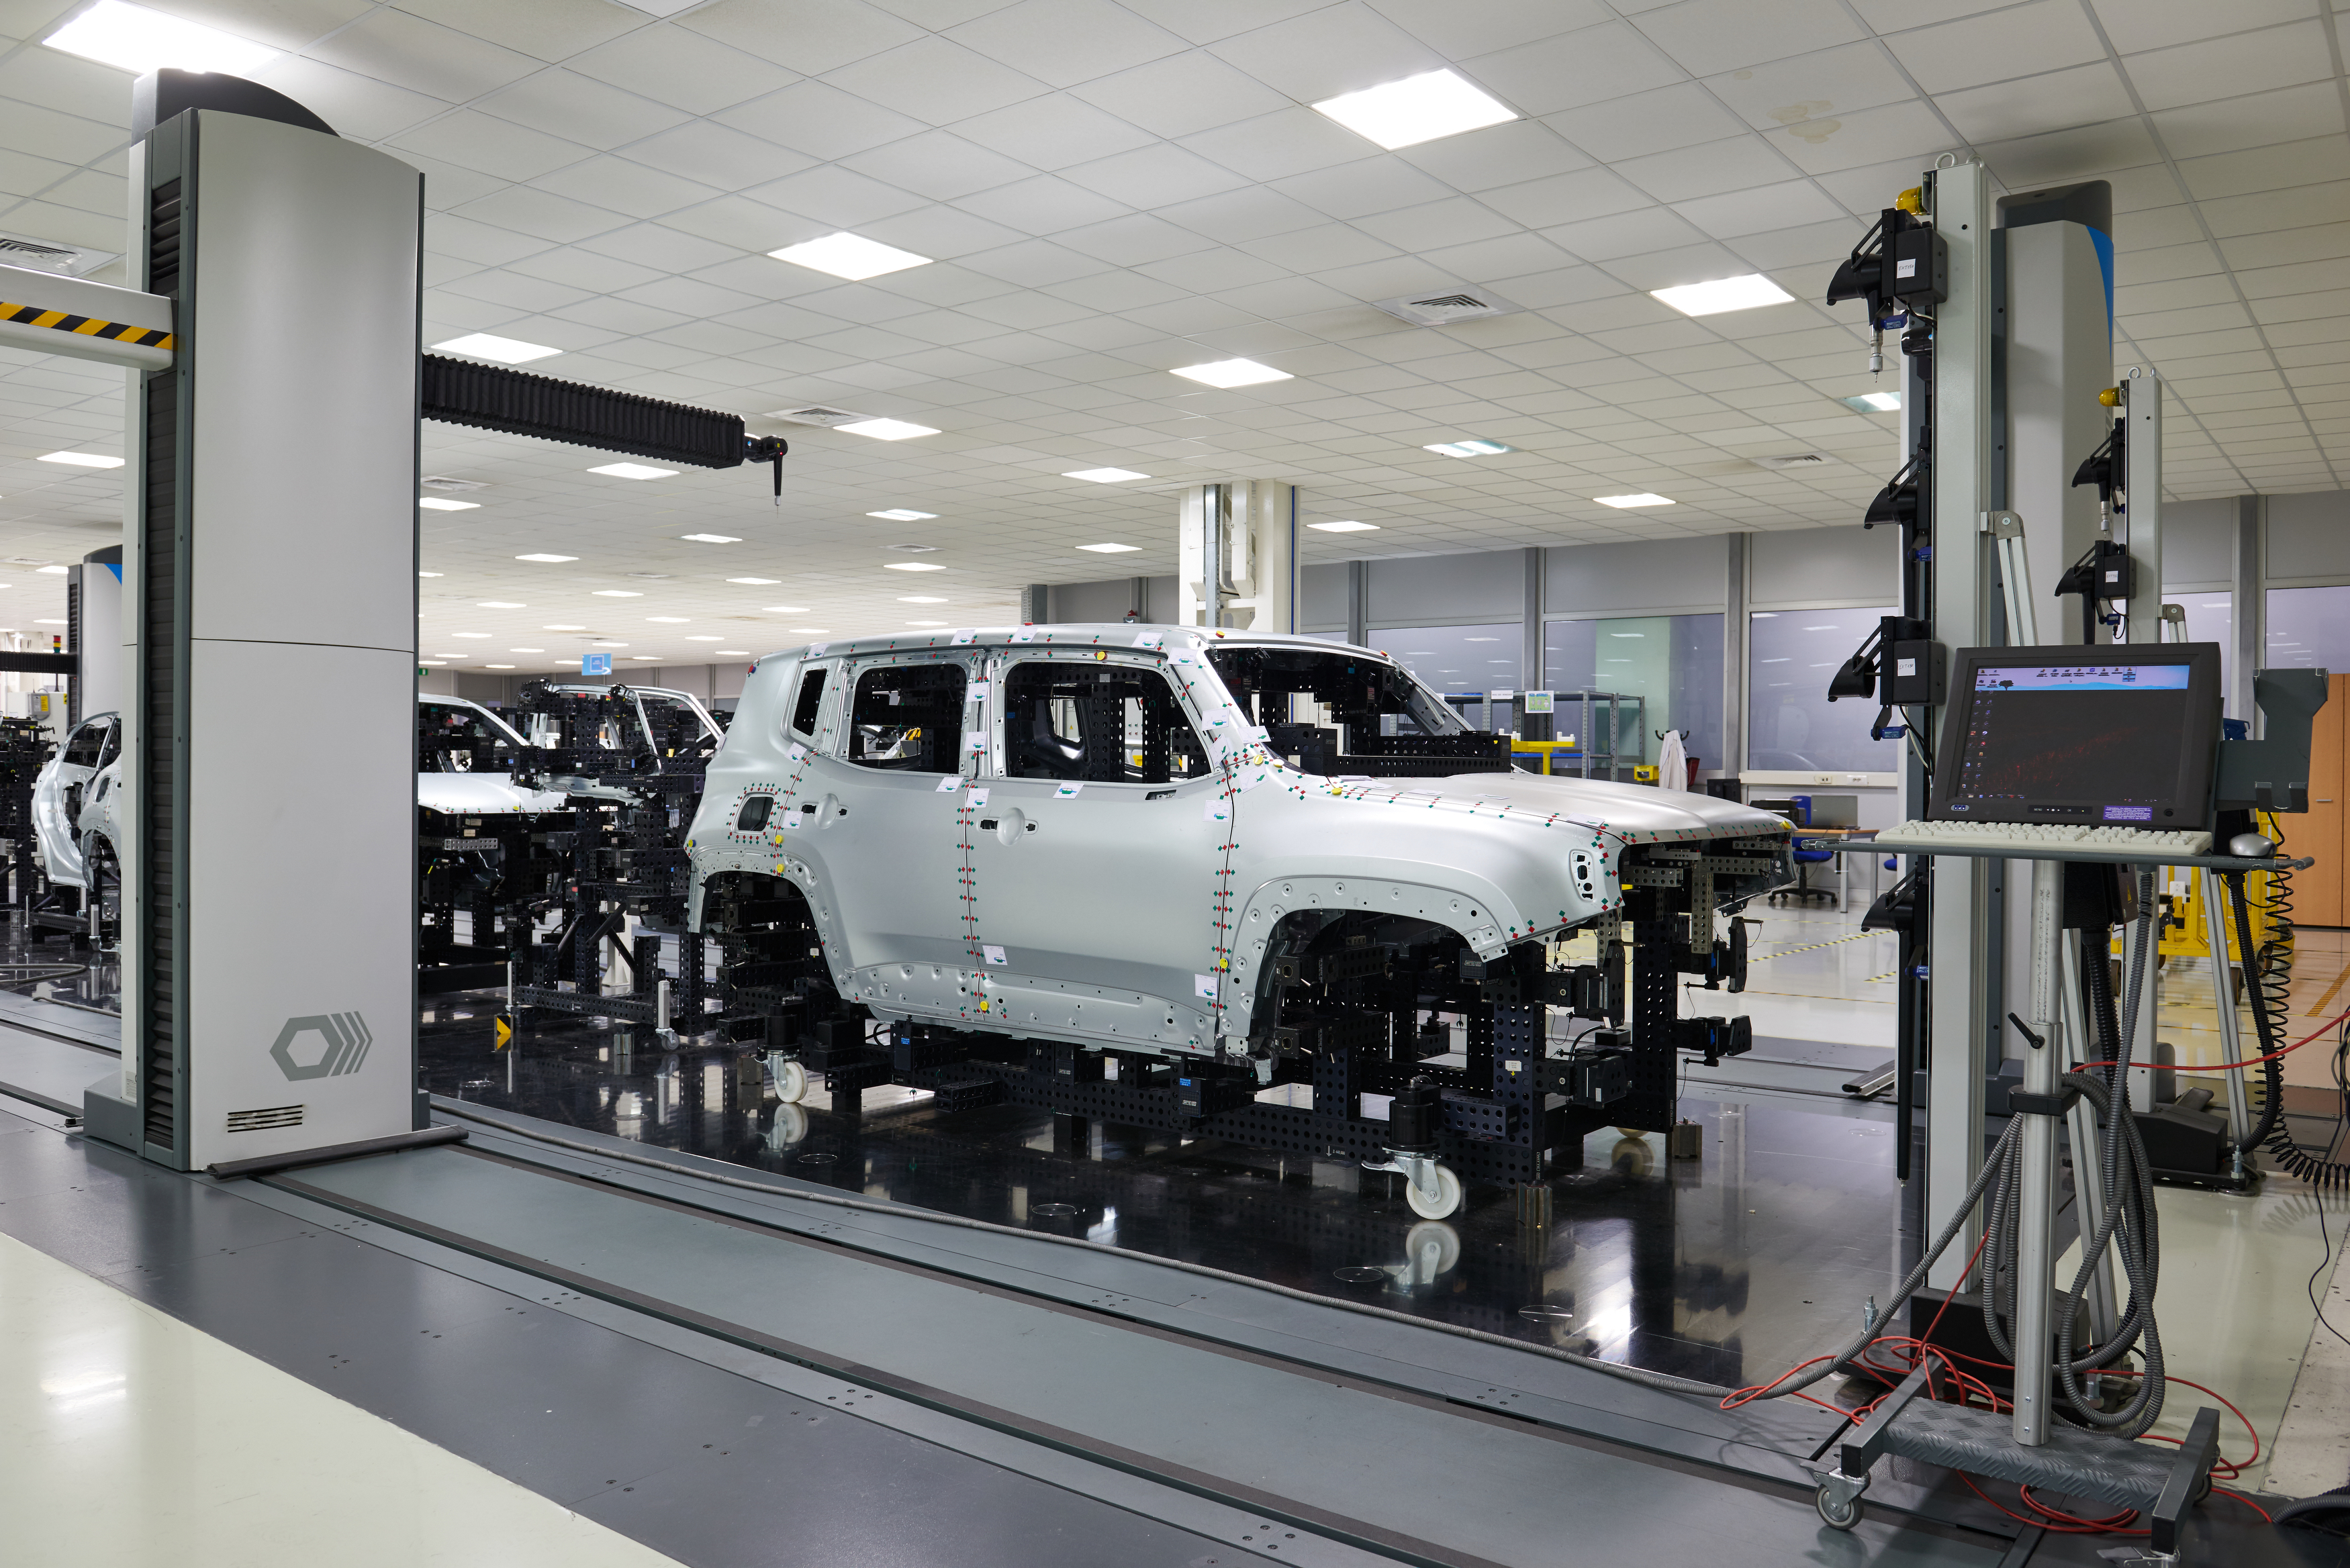 FCA – Gruppo Fiat Chrysler Automobiles. La linea di assemblaggio Jeep di Melfi (courtesy photo: Guido De Bortoli/Getty Images)